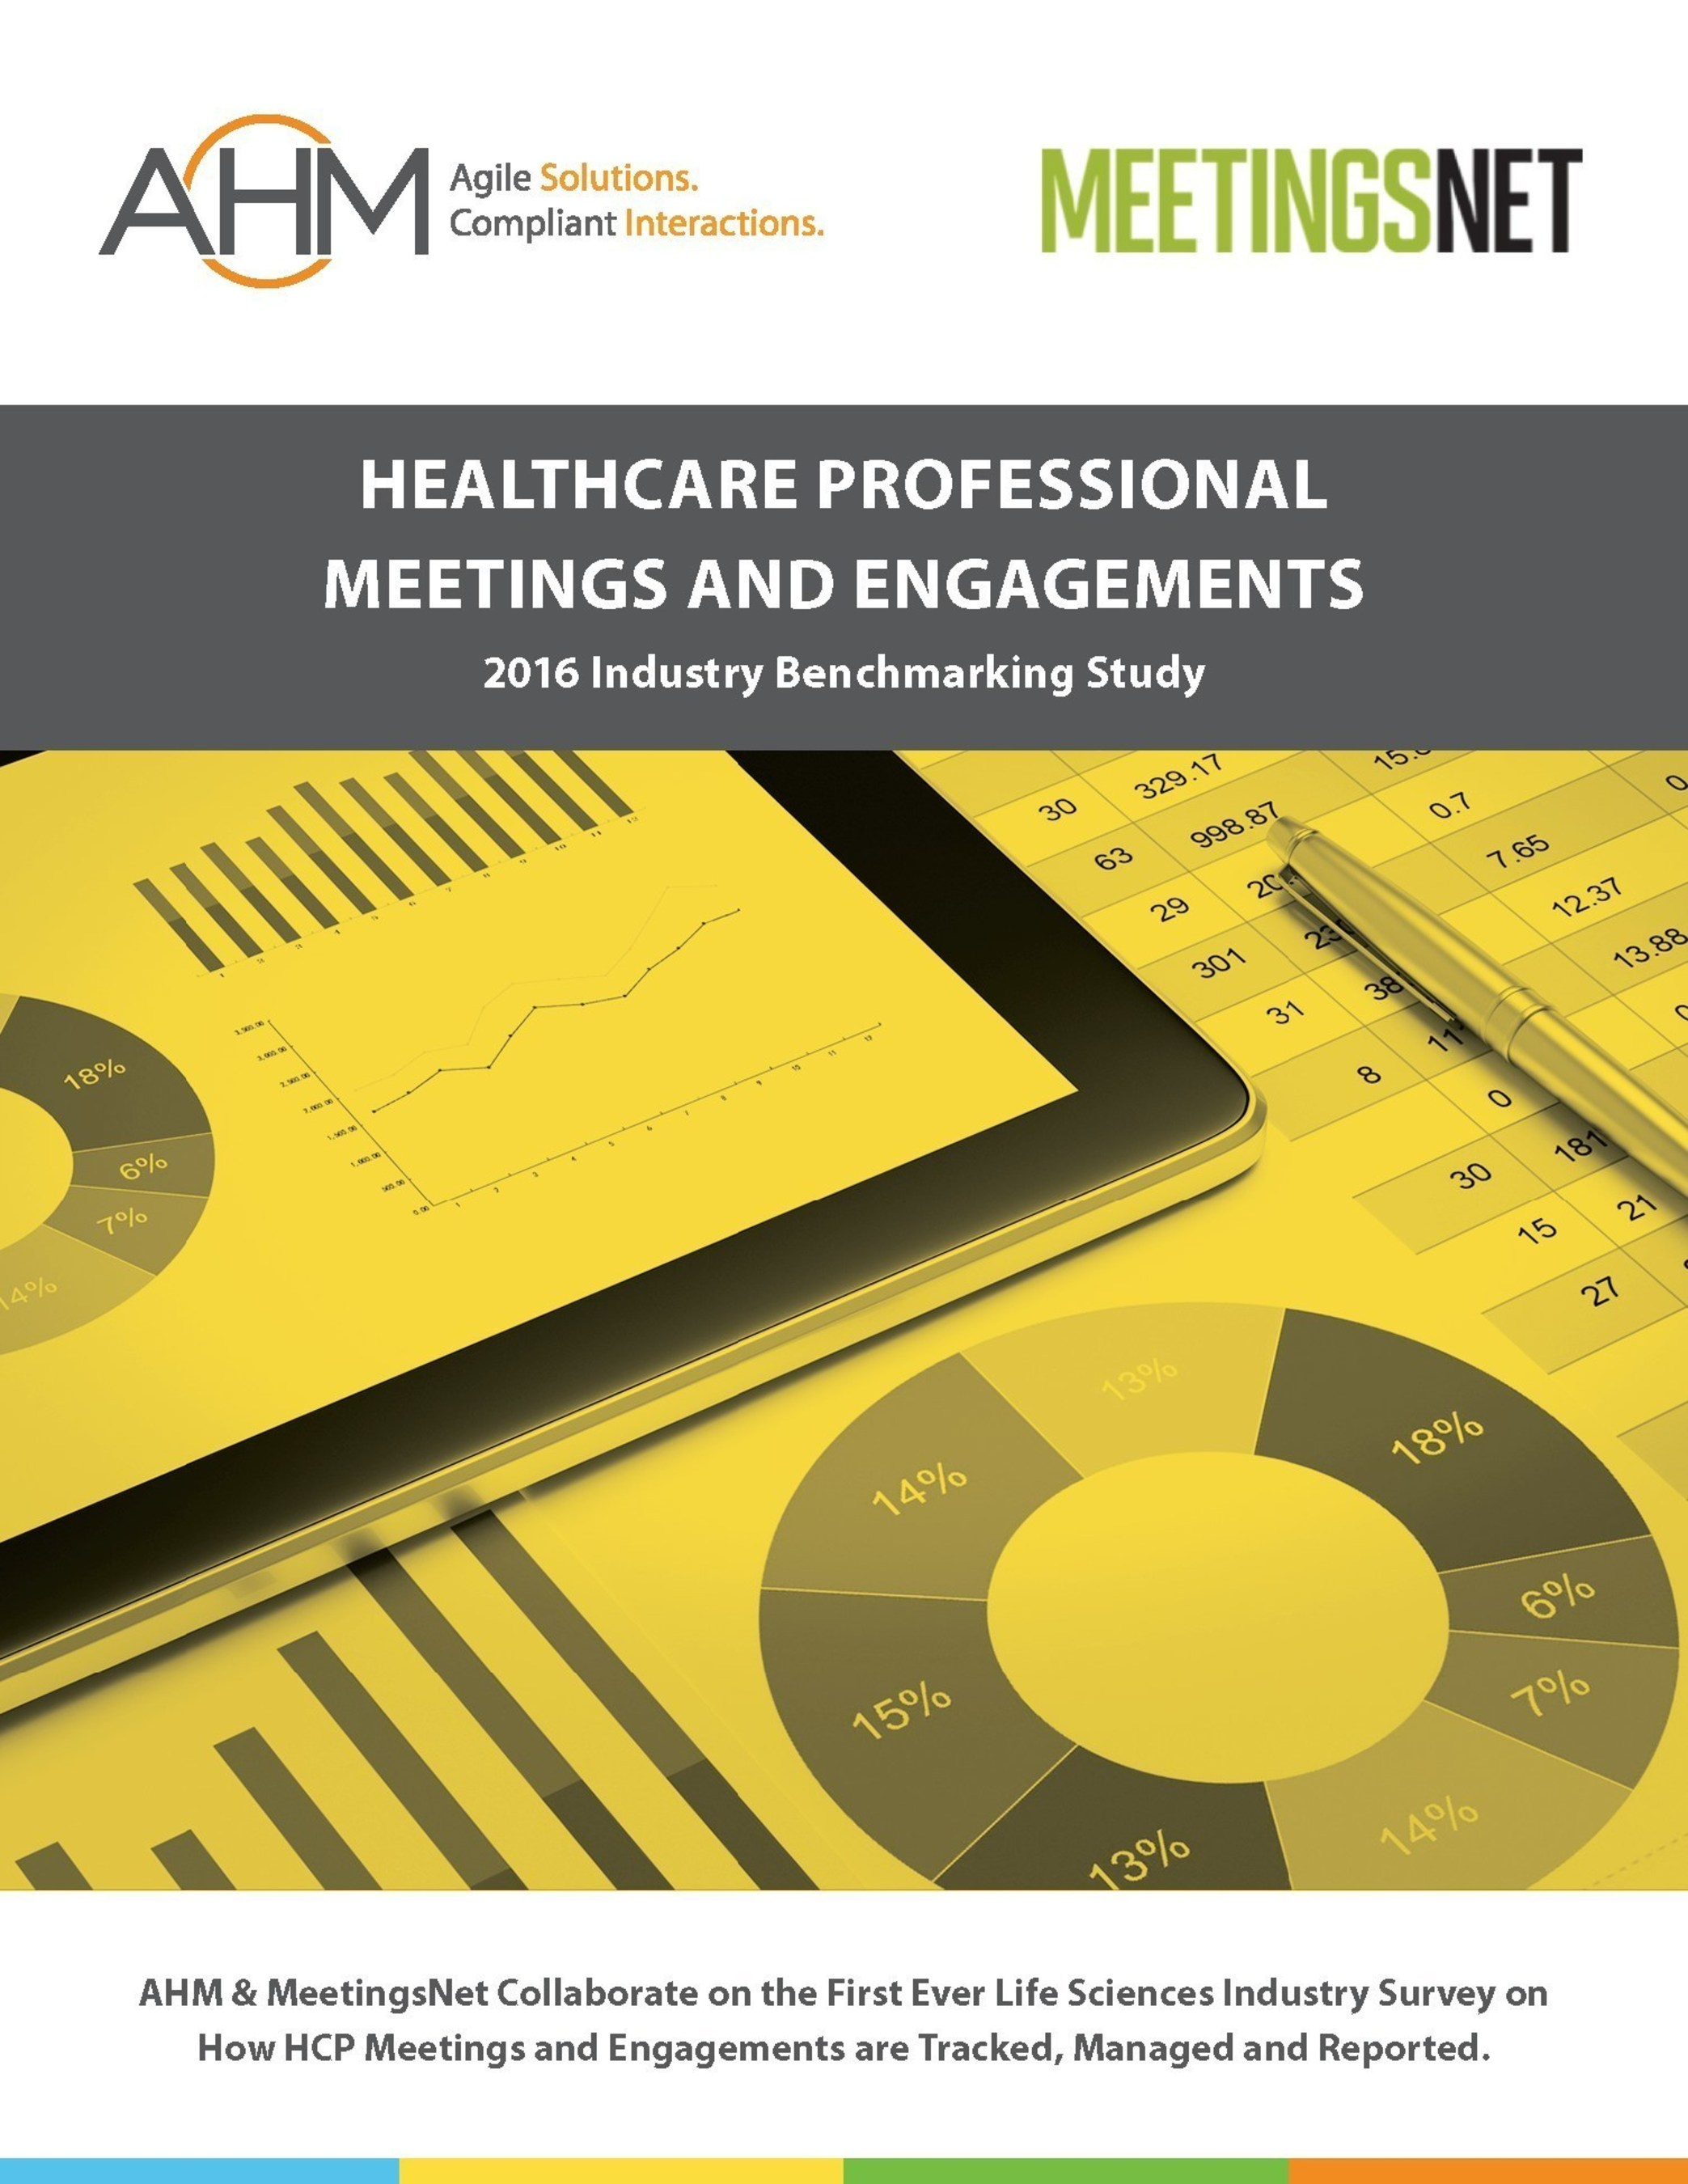 AHM & MeetingsNet Collaborate on the First Ever Life Sciences Industry Survey on How HCP Meetings and Engagements are Tracked, Managed and Reported.